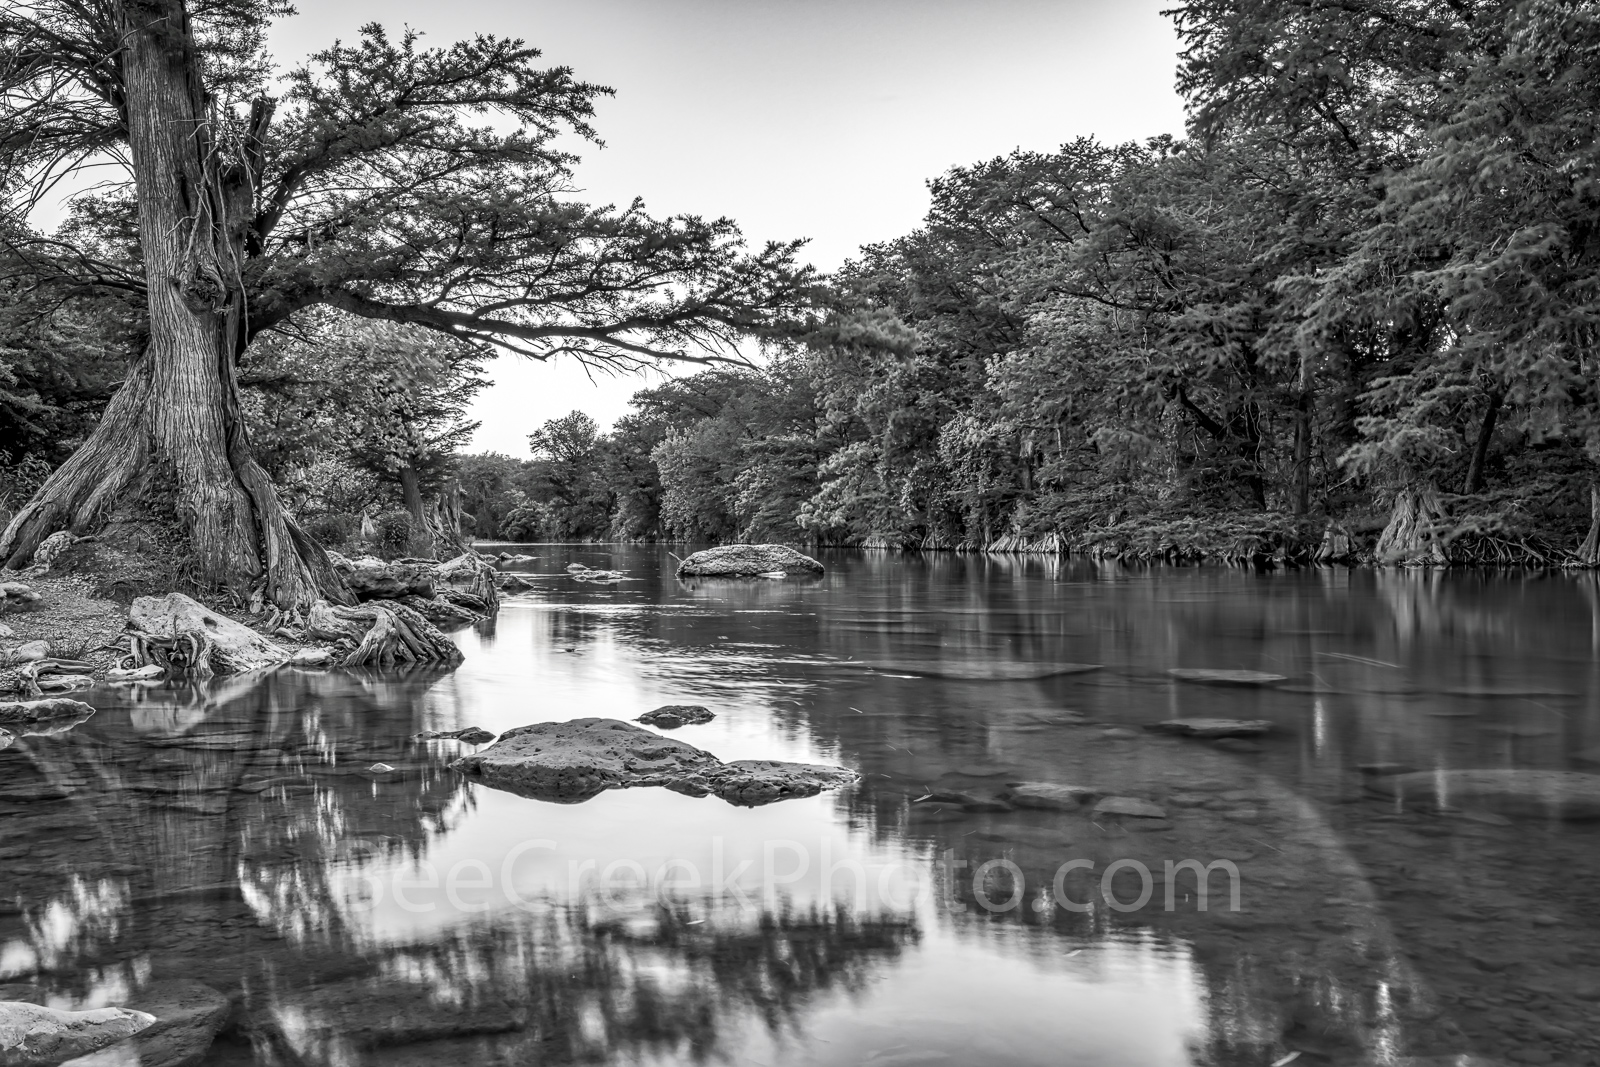 Guadalupe river, black and white, BW, Guadalupe State Park, cypress trees, rocks, flood, river rocks, water, river, texas hill country, texas, landscape, texas landscape,, photo